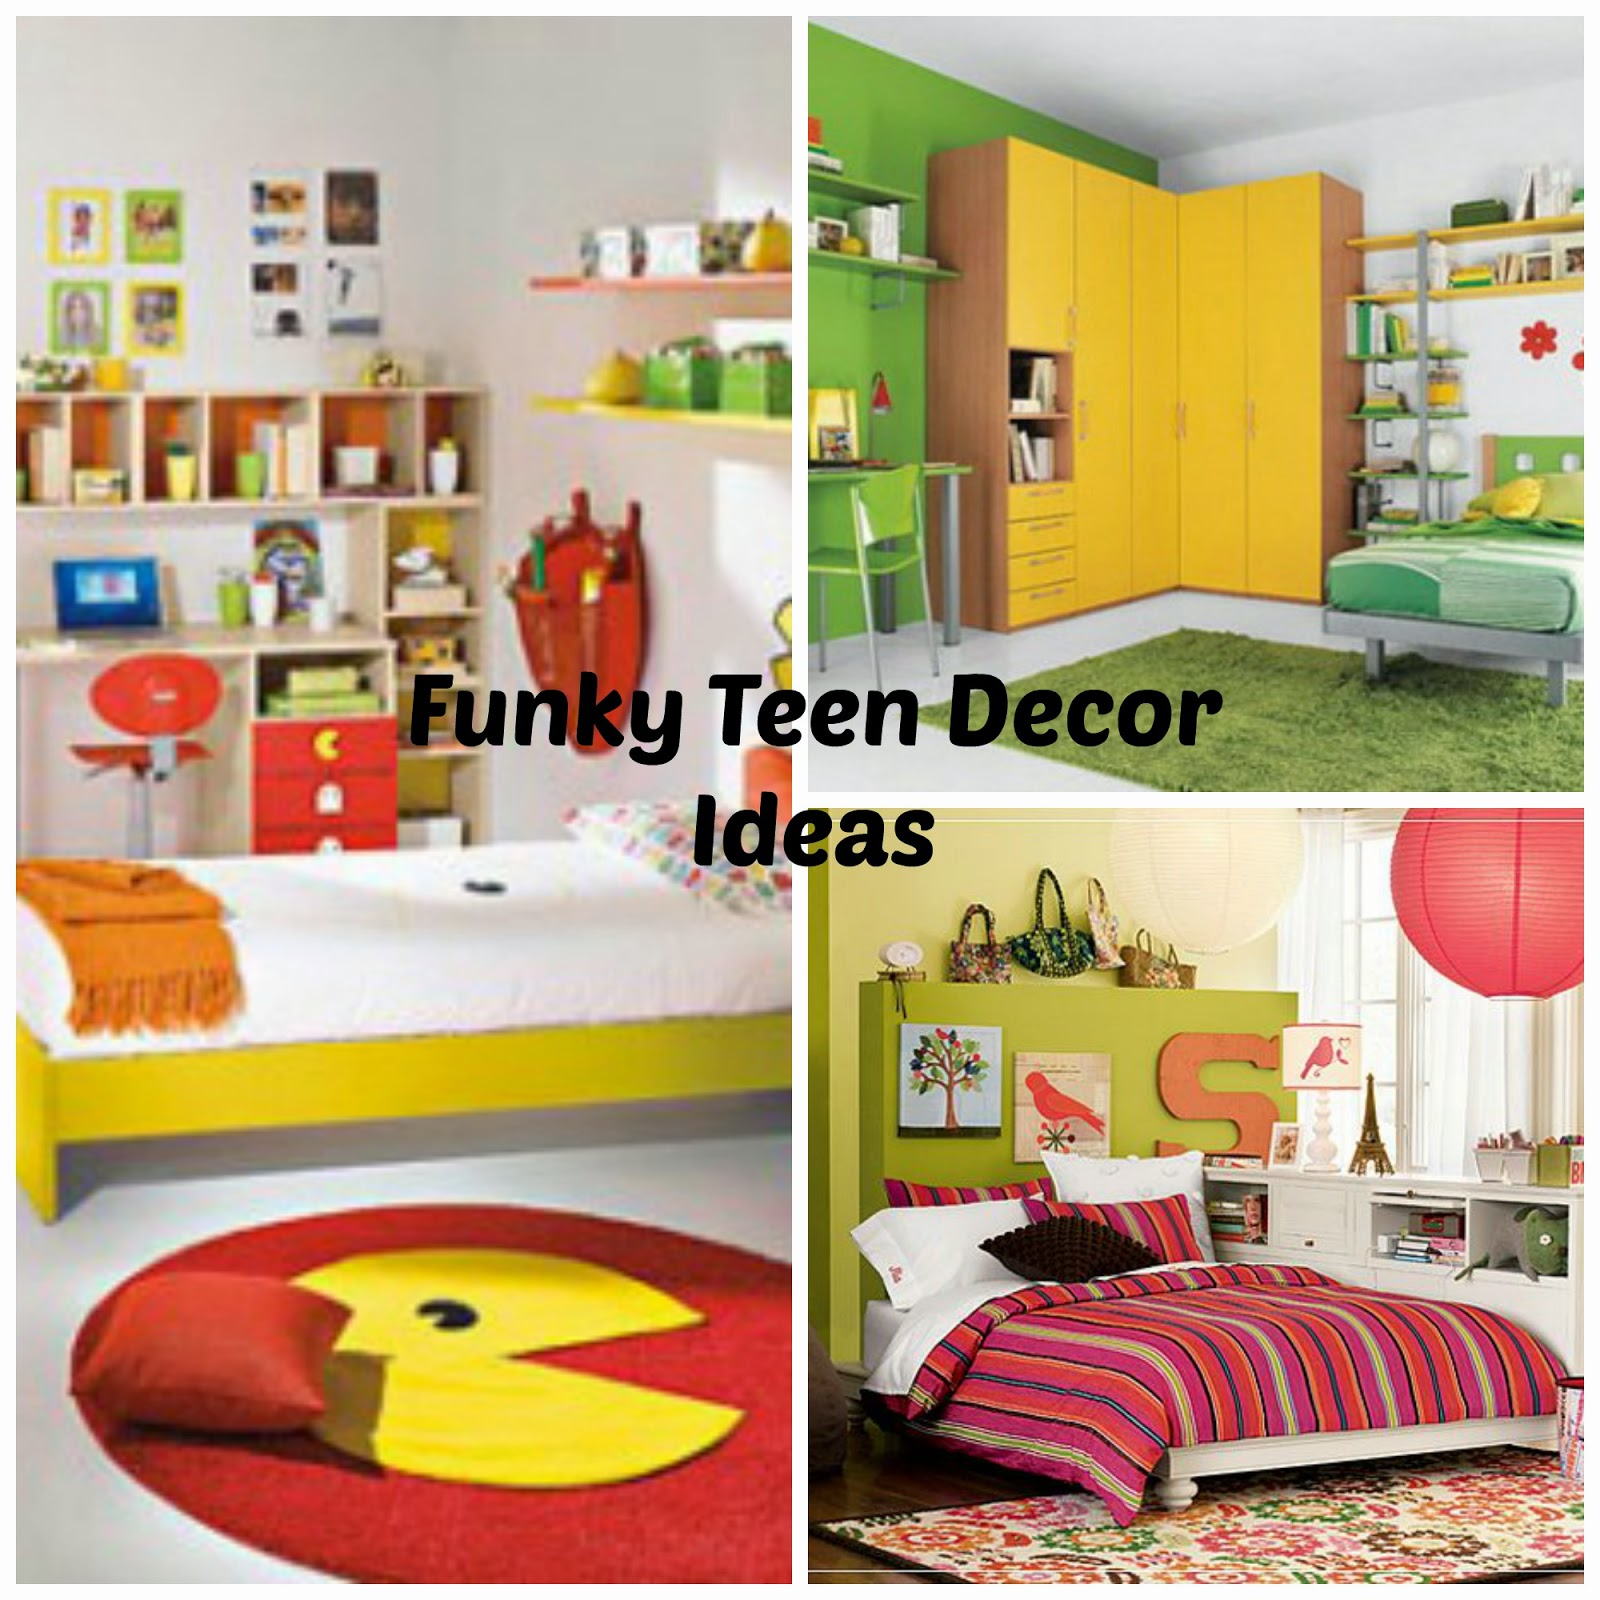 Funky Bedroom Decor: A Little Bit Of Patti: Funky Teen Room Decorating Or